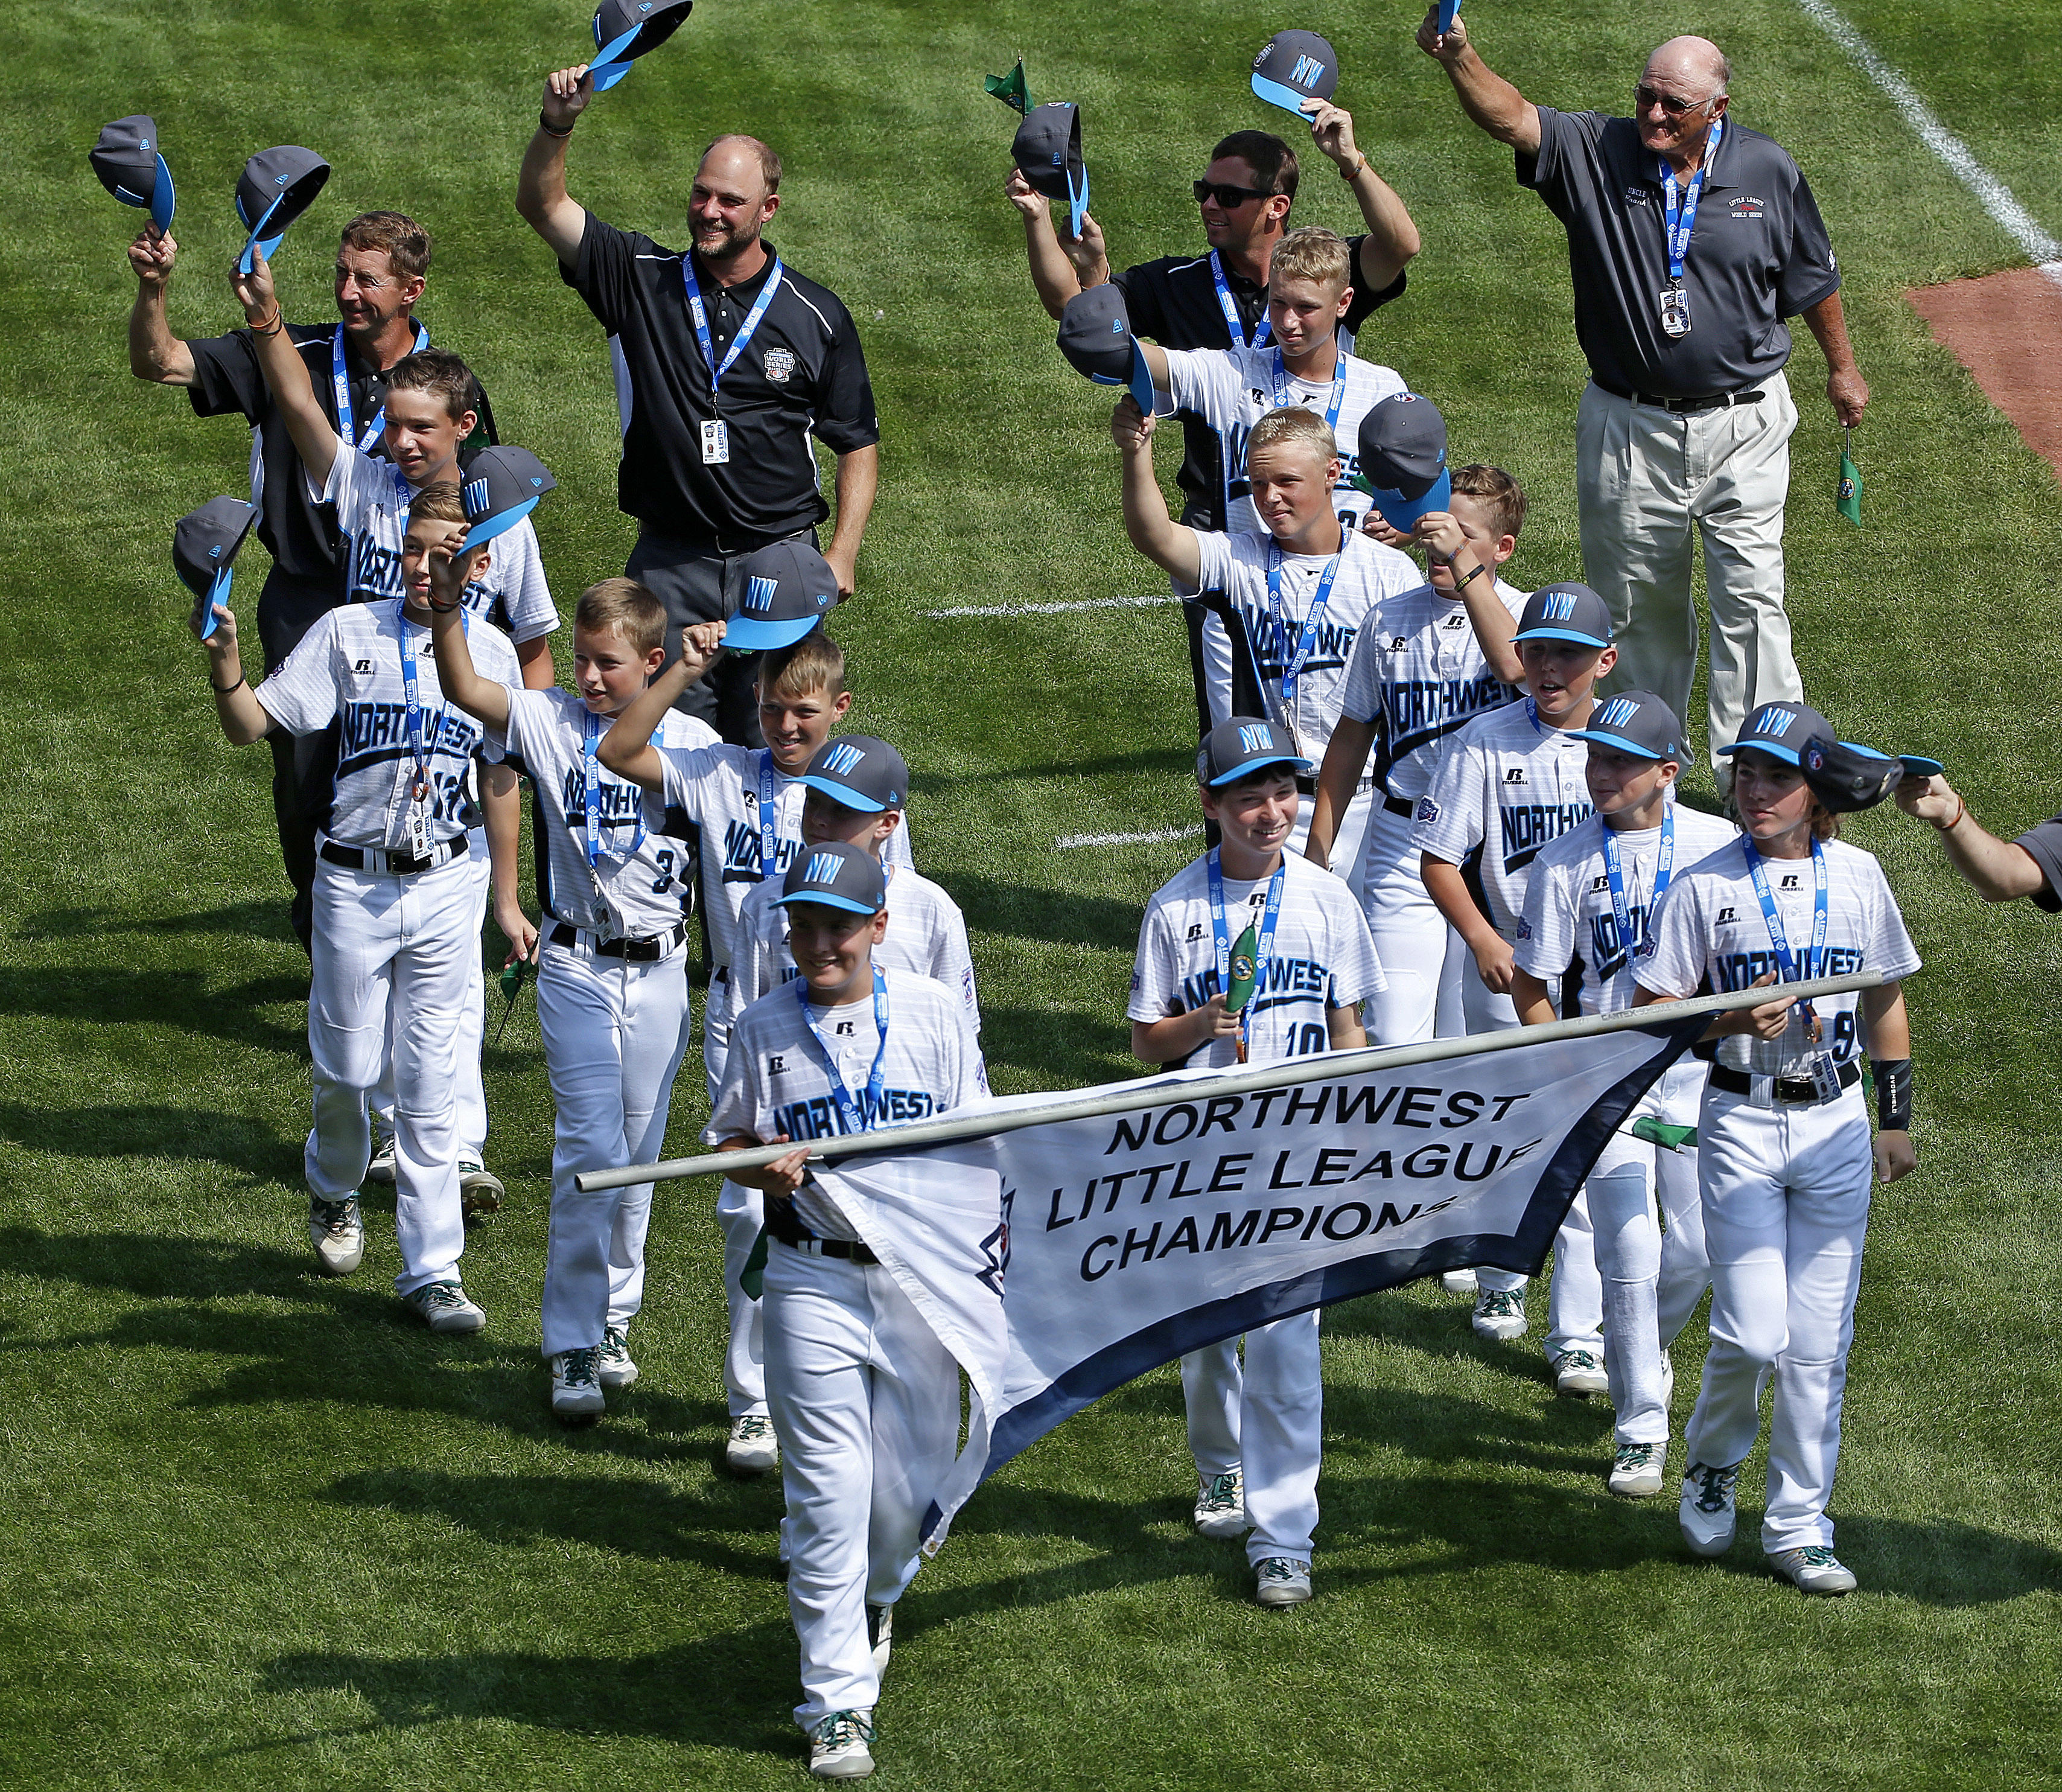 https://i1.wp.com/www.ocregister.com/wp-content/uploads/2017/08/llws_baseball_walla_24342481.jpg